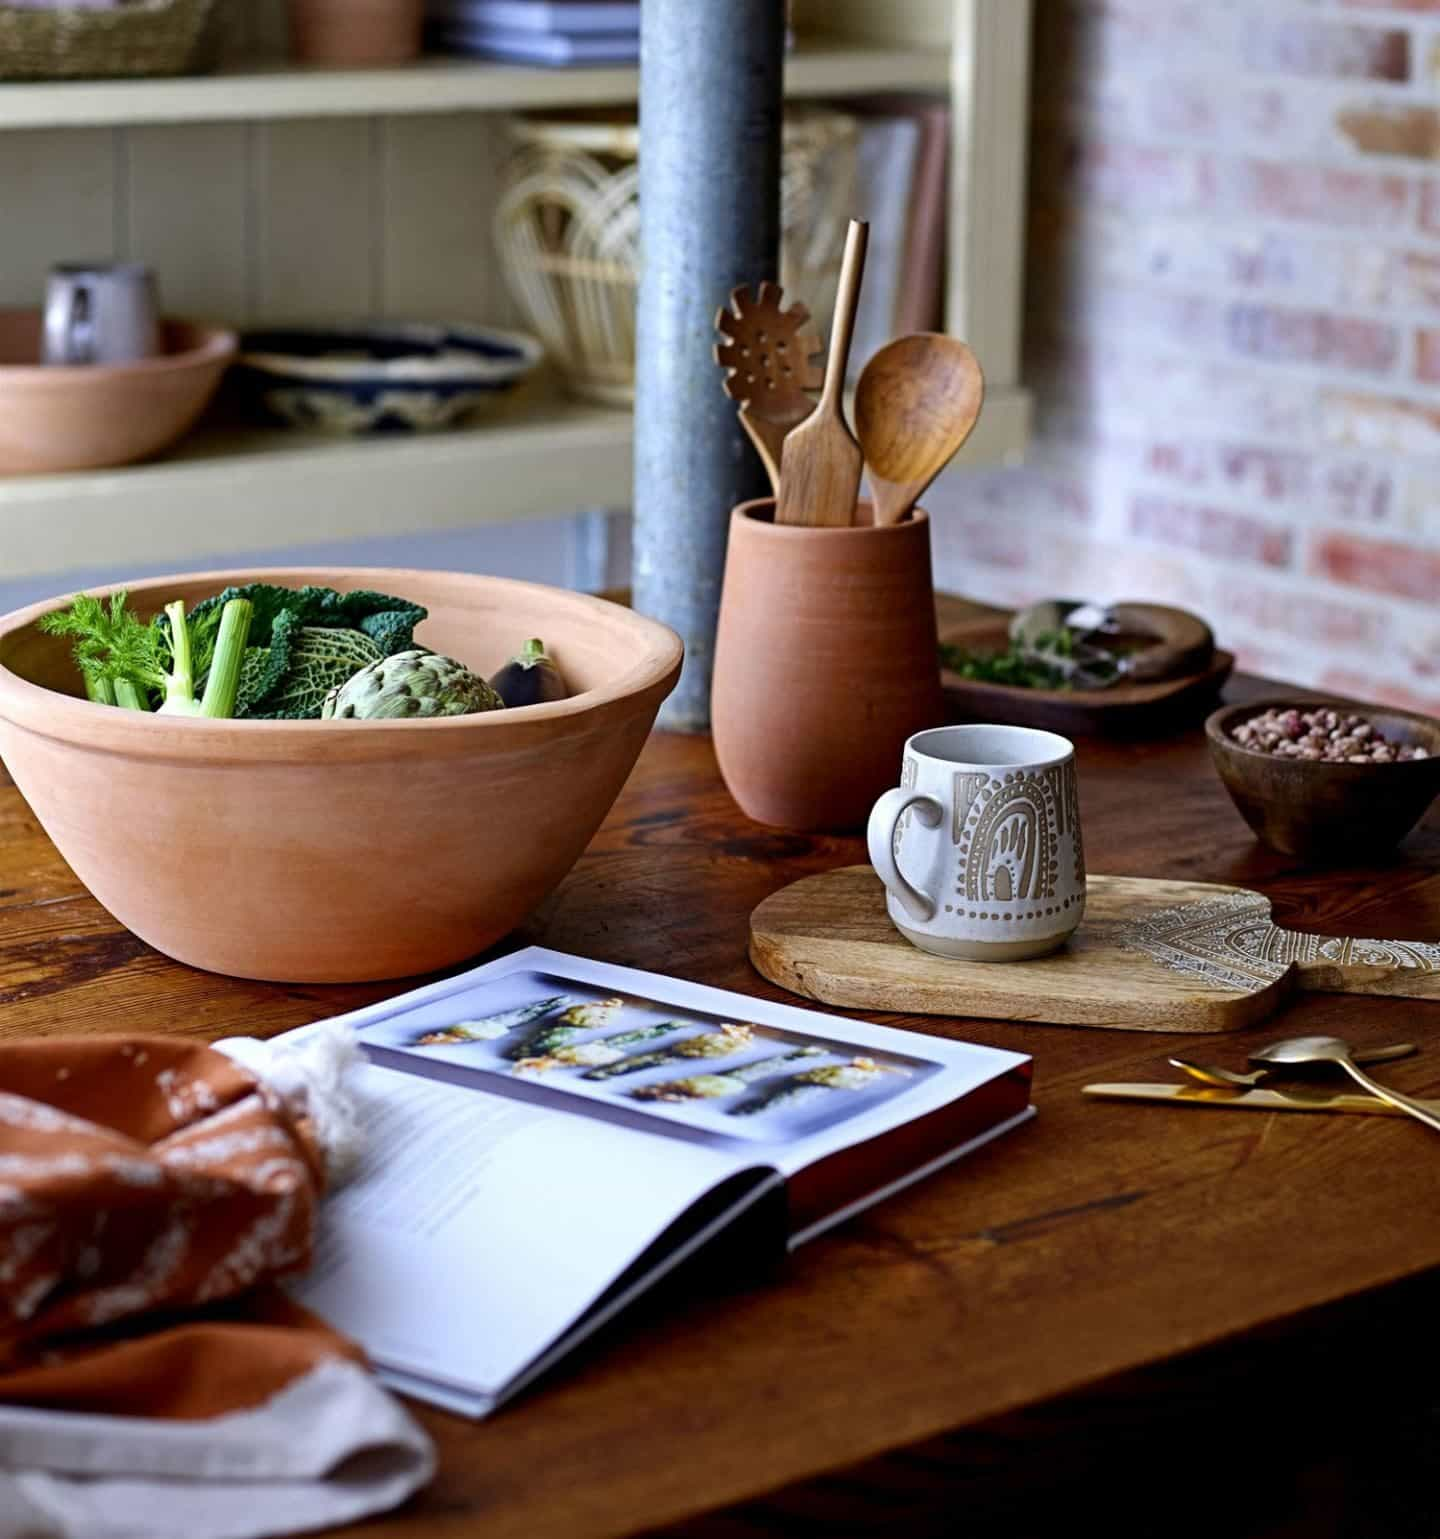 Shekåbba The Danish Home stocks a range of Danish homewares. An earthenware bowl of vegetables on a wooden tabletop next to a pot of wooden utensils a mug of tea and a cookbook.